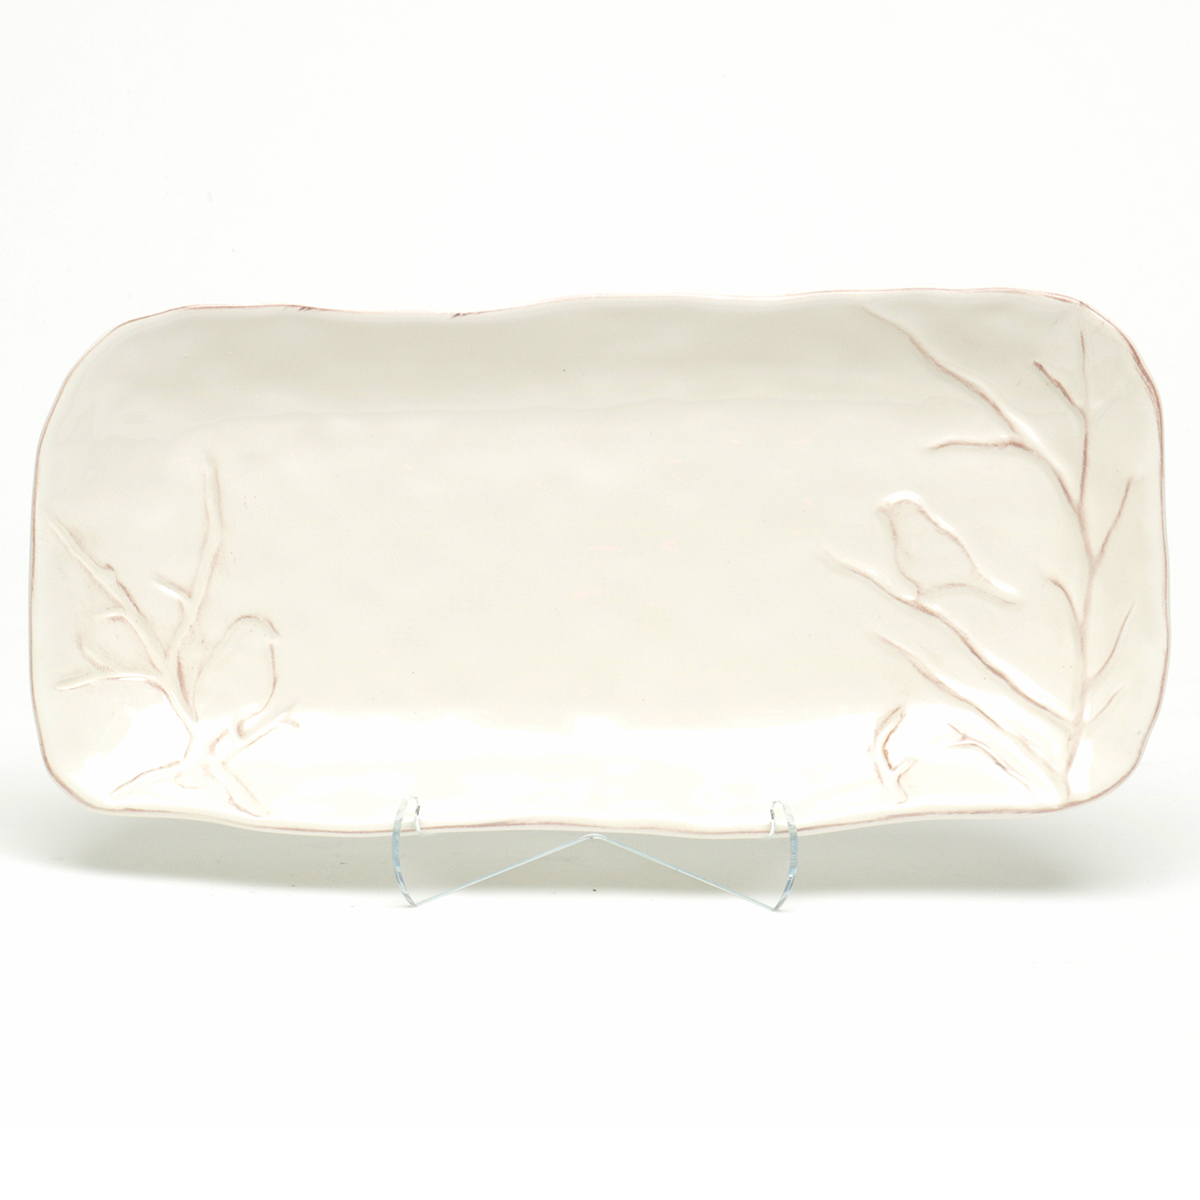 "FARMHOUSE BIRD WITH TWIG DESIGN PLATTER 6.5""X13"" CREAM"